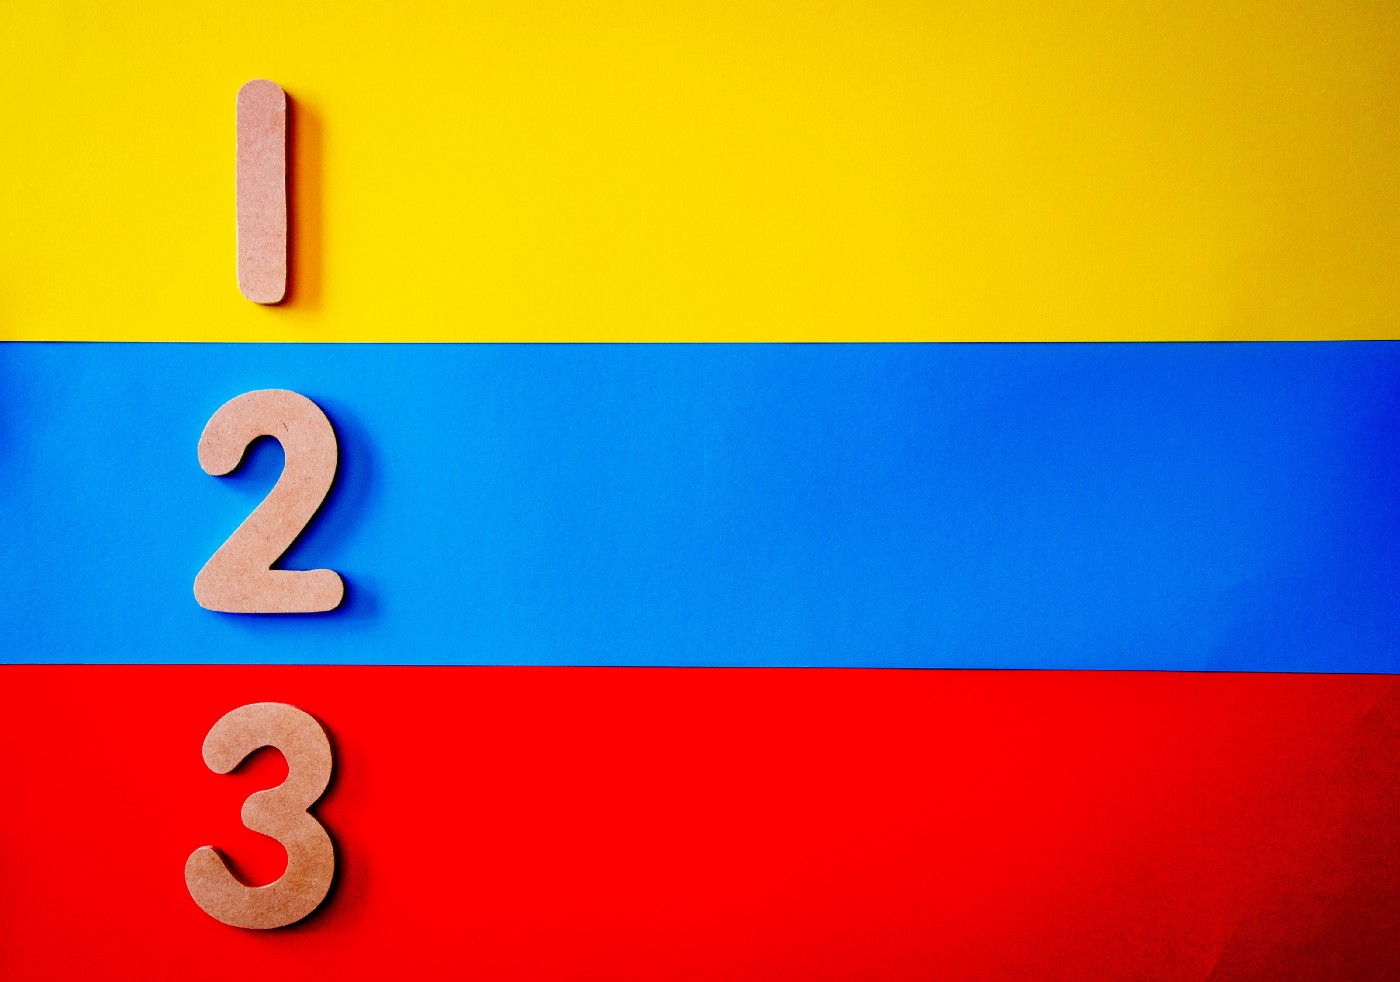 Numbers 1, 2, 3, with yellow, blue and red lines